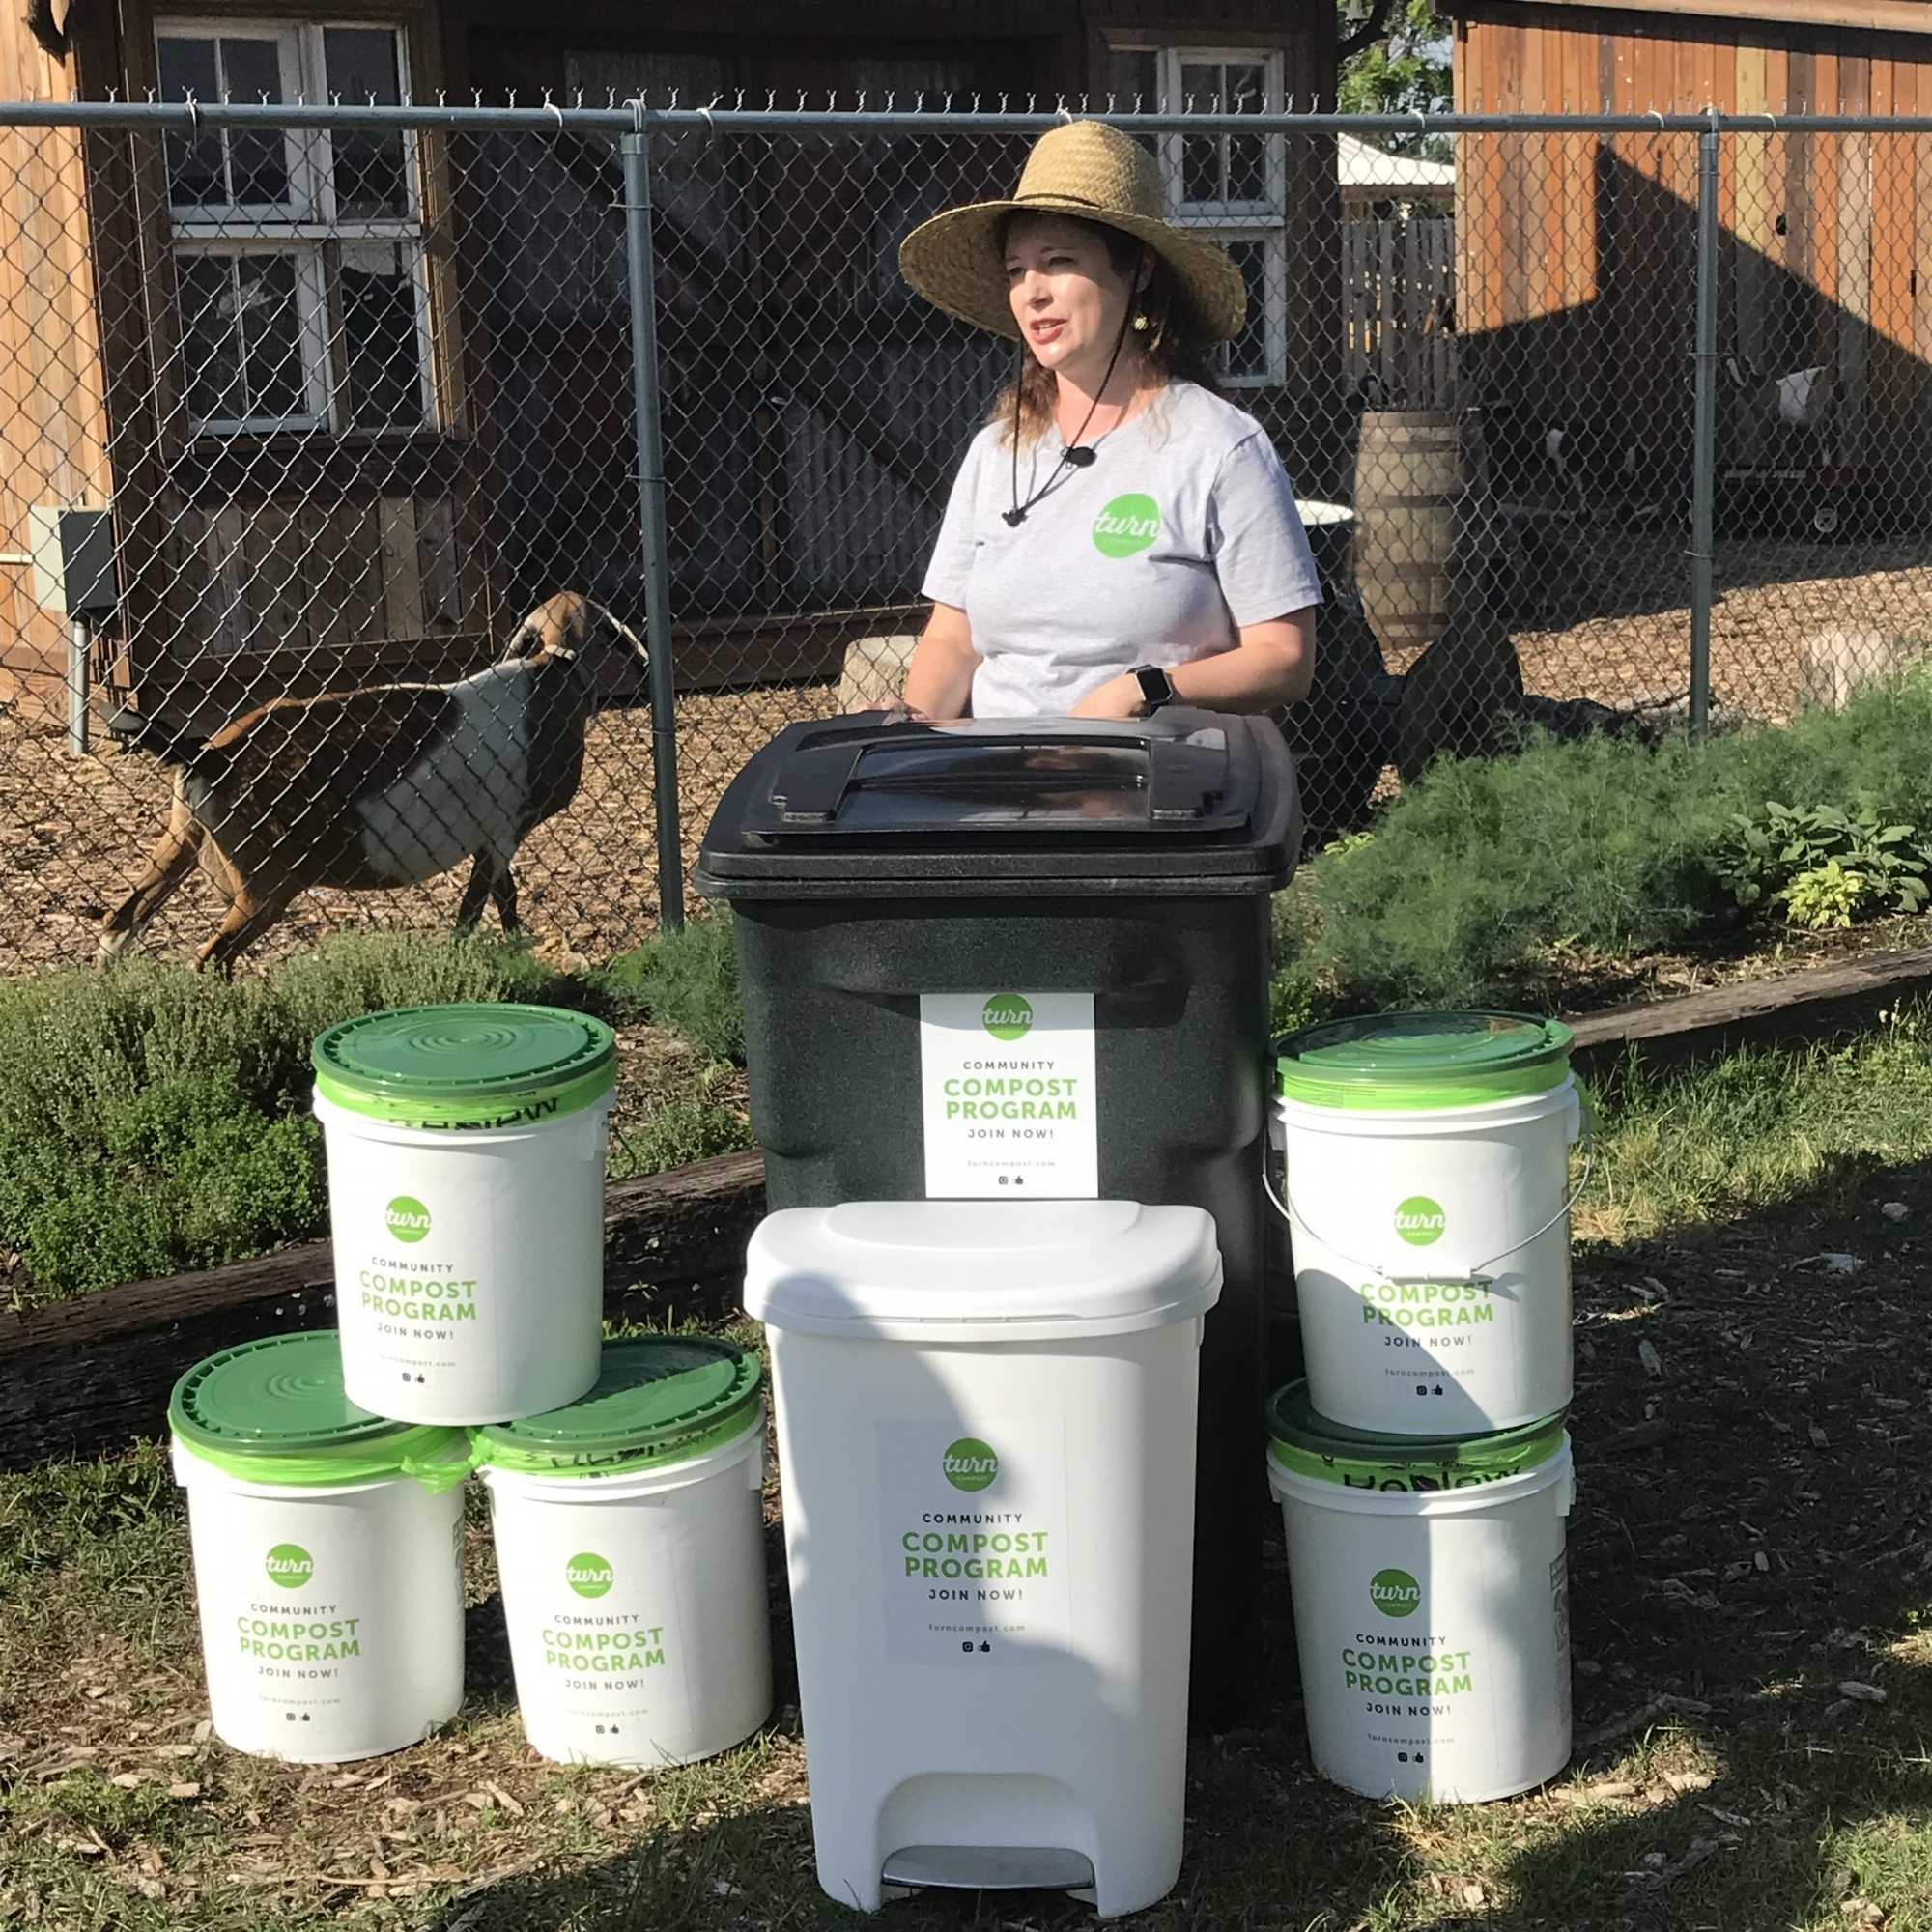 NBC 5 - A new program that just started in Dallas called Turn Compost is the first of its kind subscription service that allows you to get your food waste picked up.Turn compost will pick up those food scraps to take them to one of our local farms and community gardens. Read More...